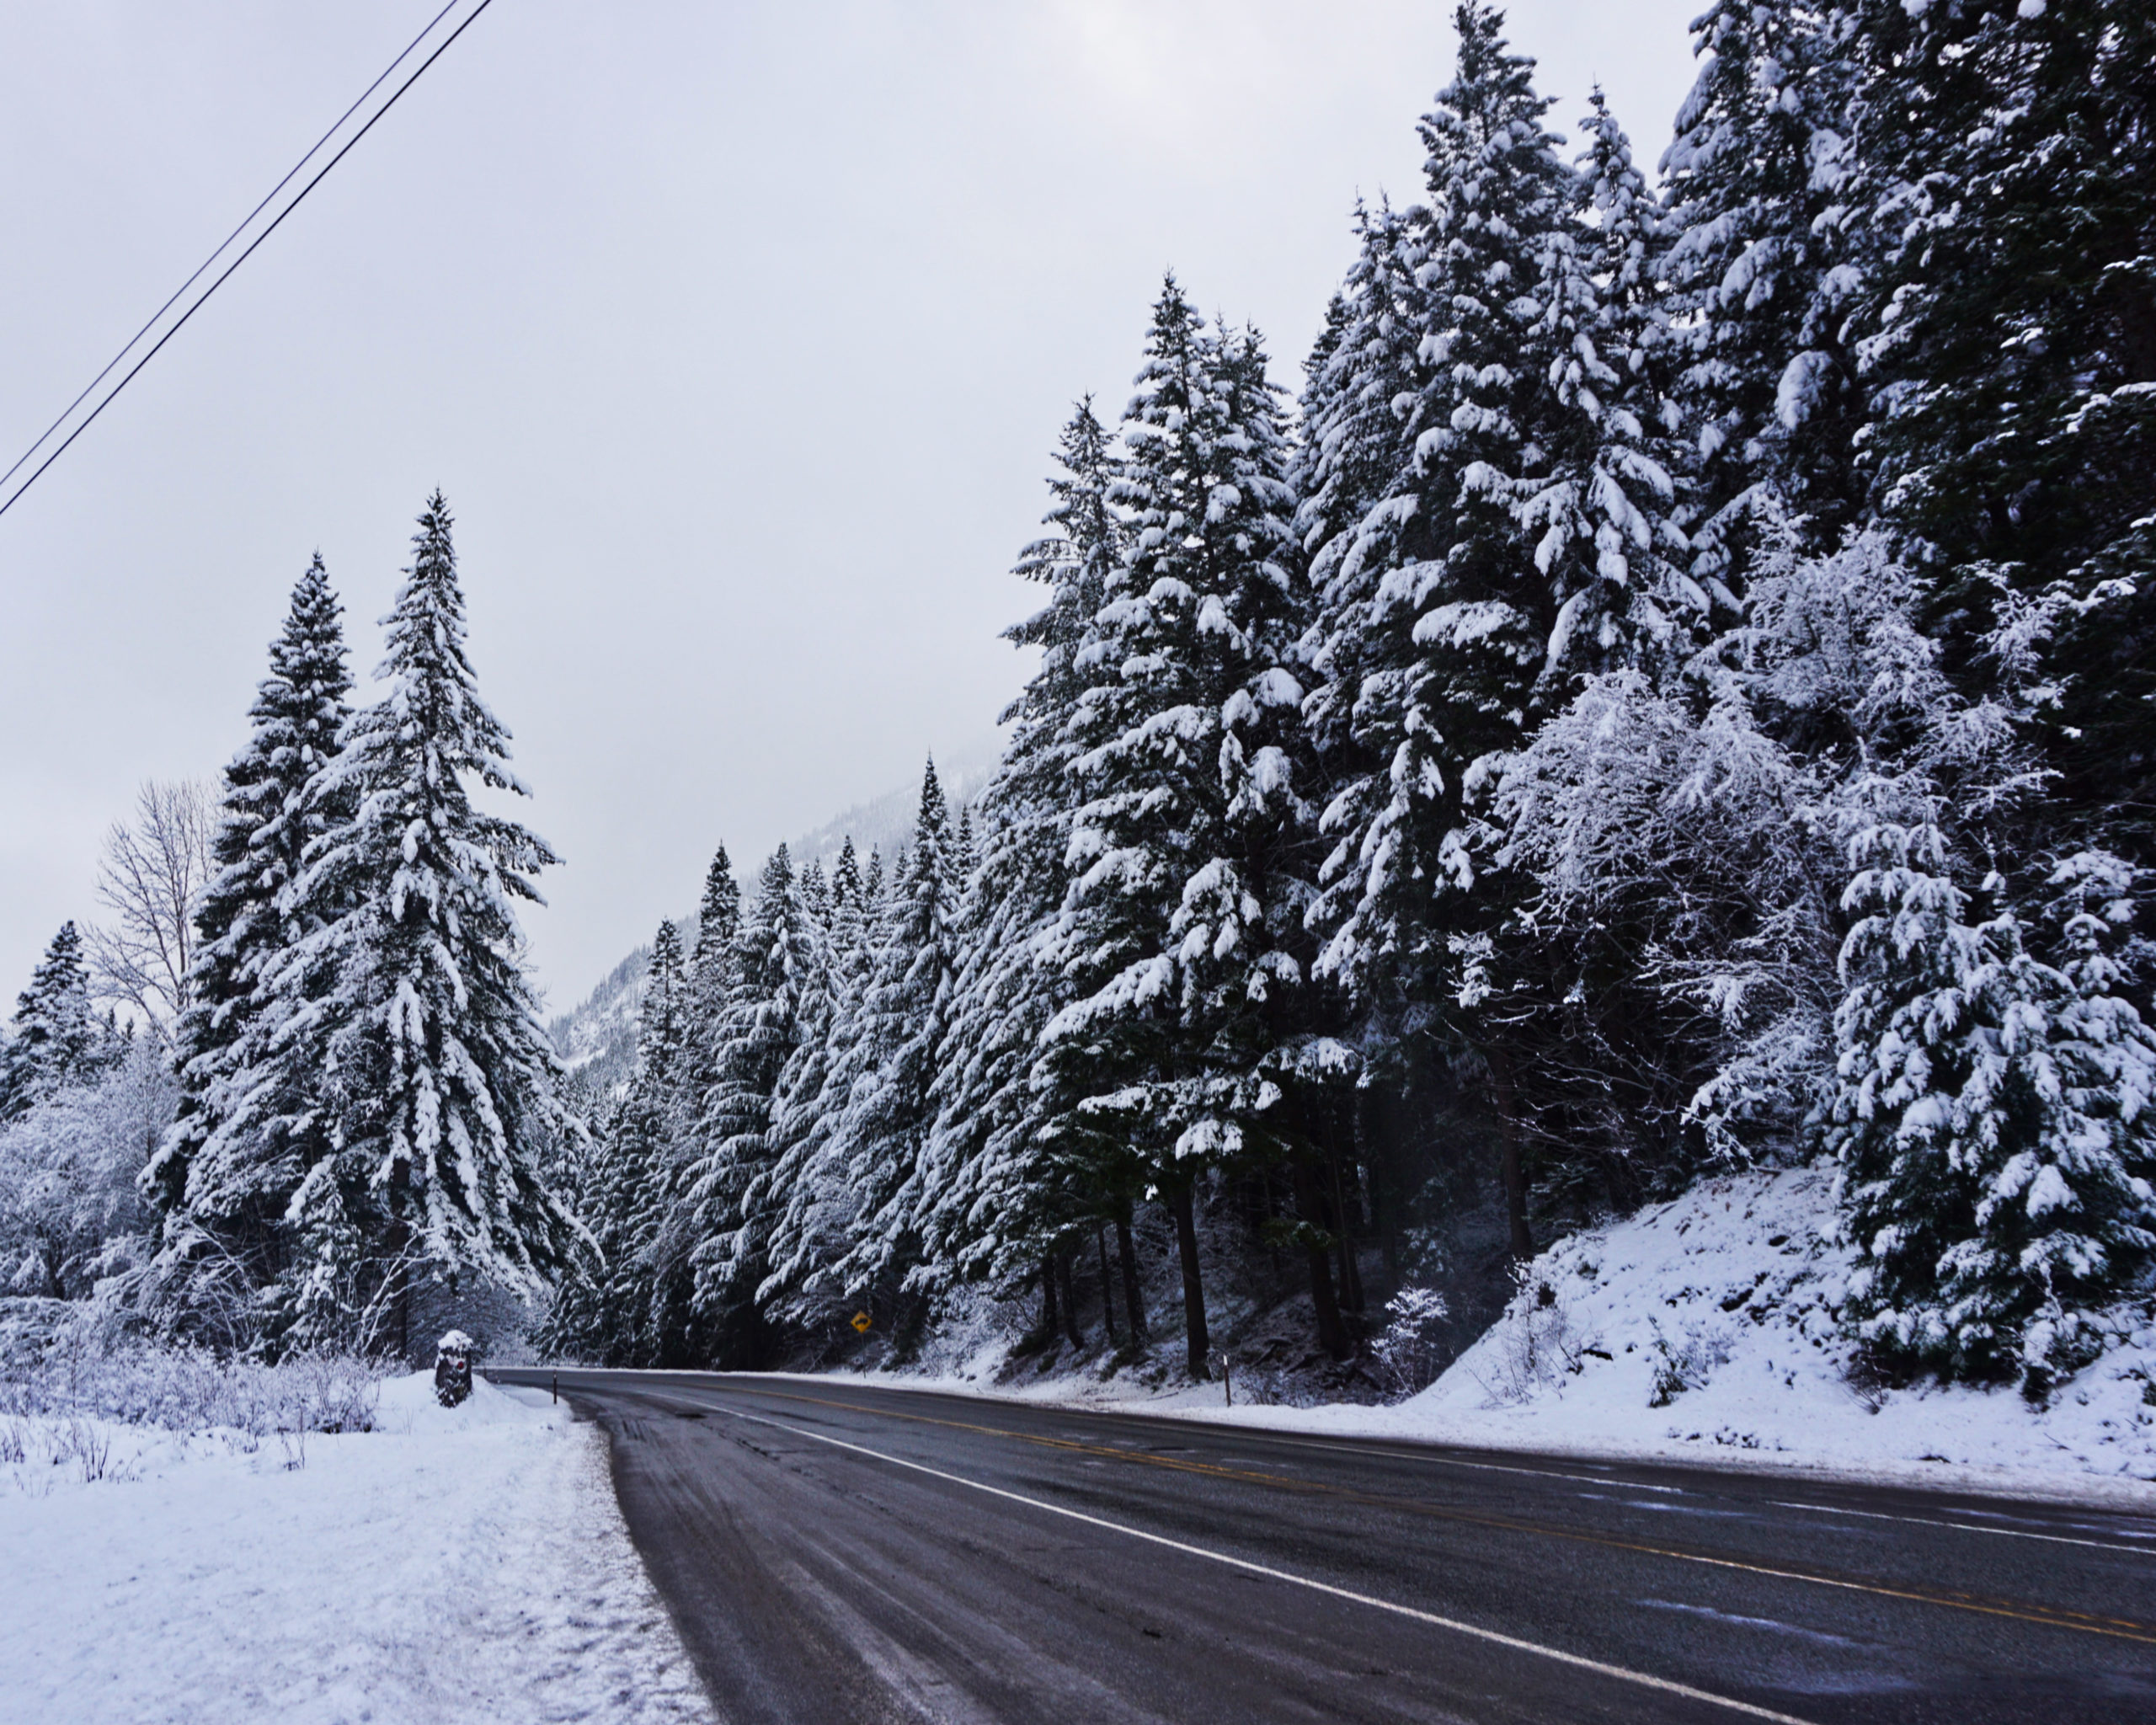 Day trip to Bavarian Christmasland from Seattle